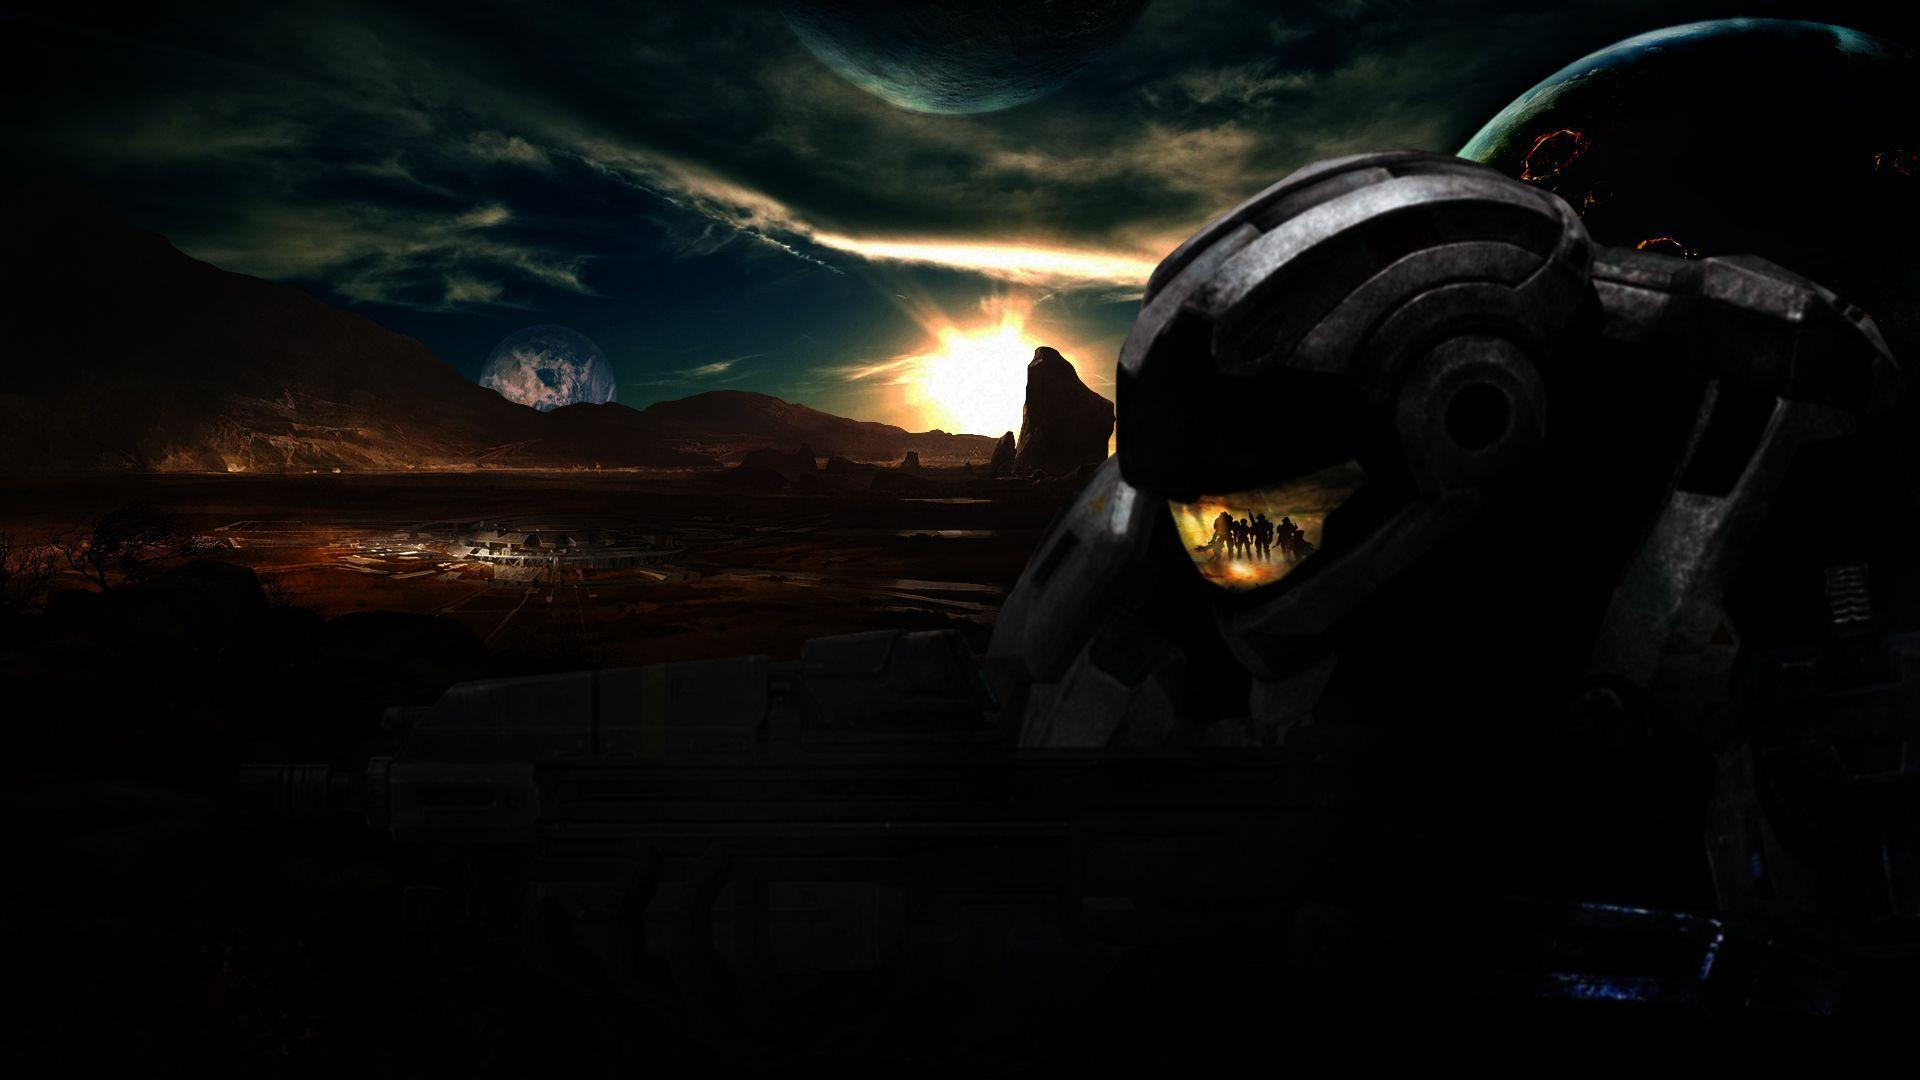 Halo reach backgrounds desktop backgrounds rising image video